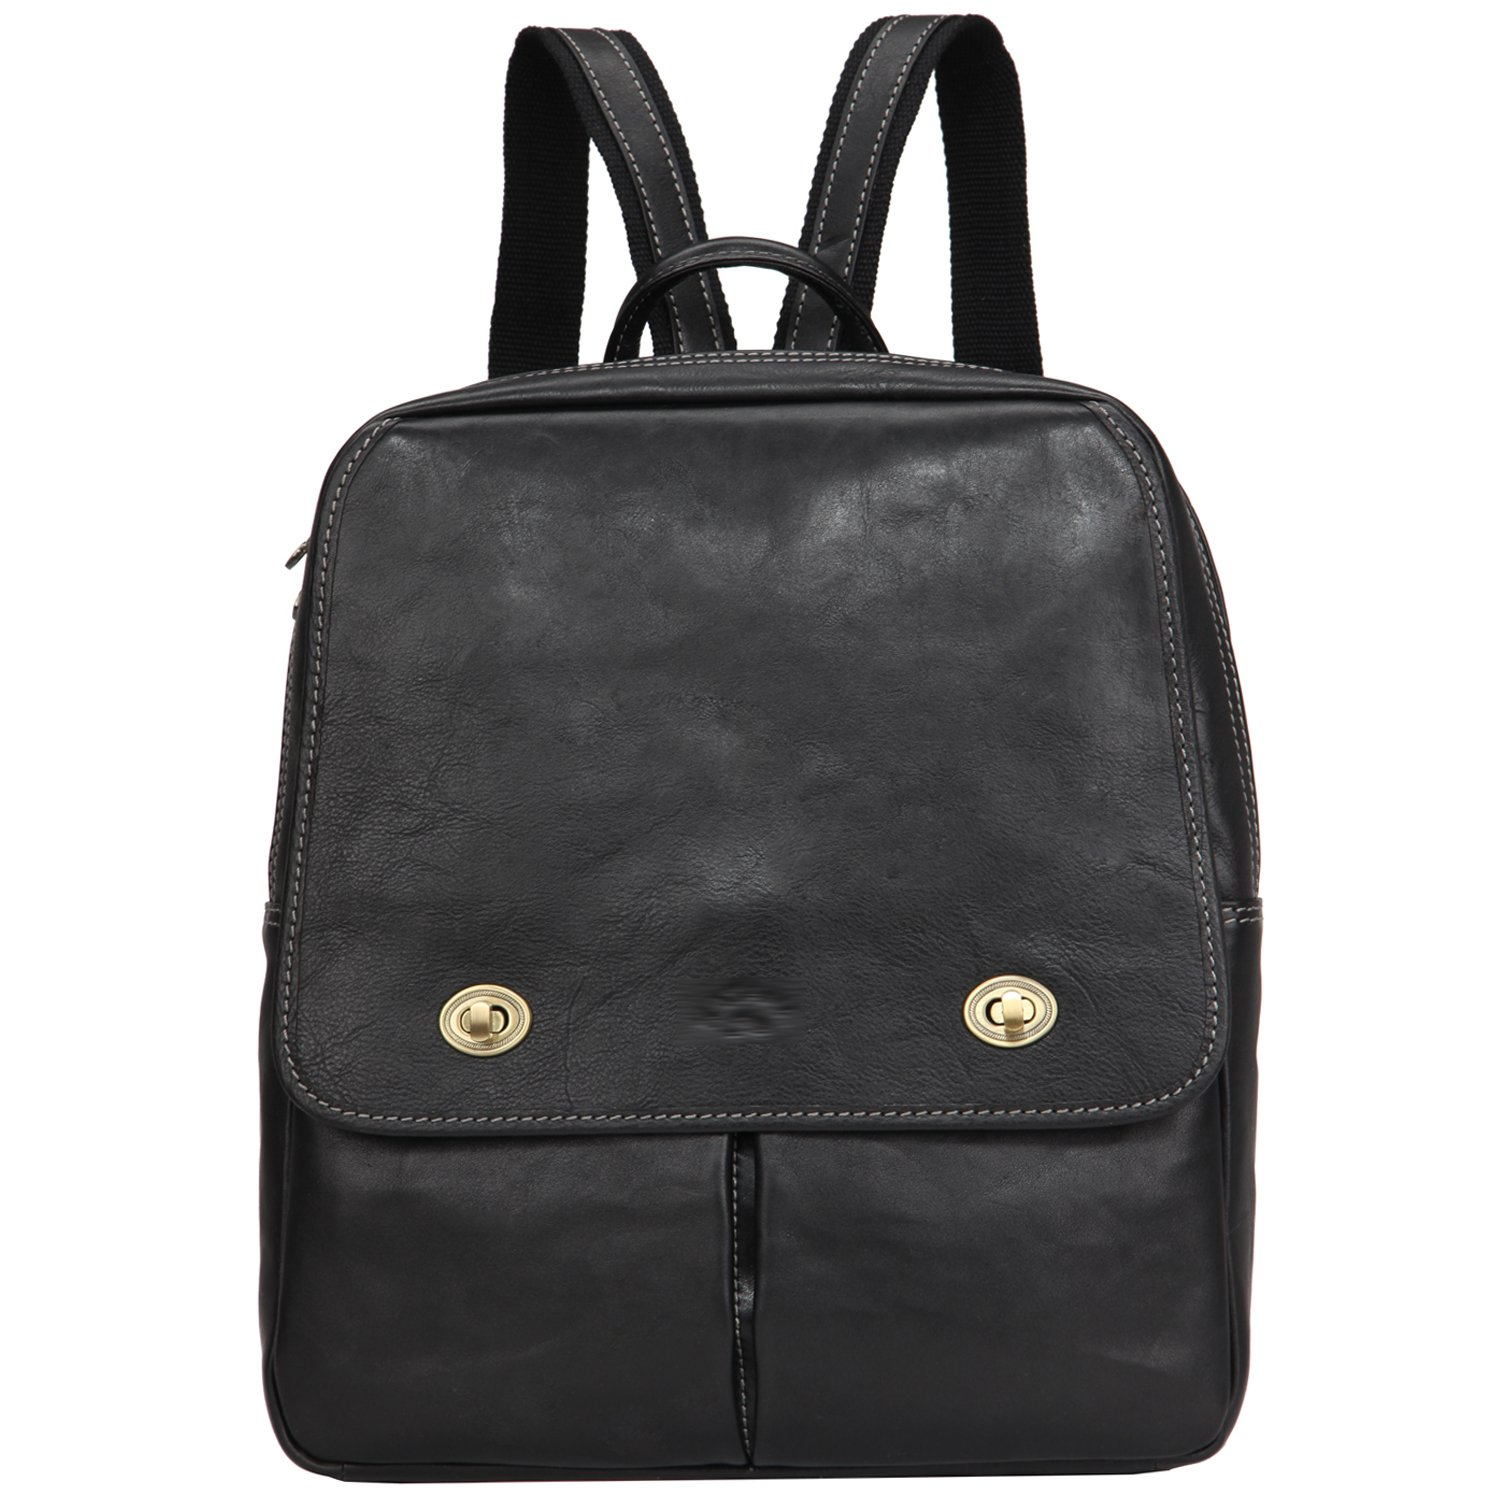 Vintage Full Grains Italian Leather Backpack for Women Travel Mid Size Flap  Over U-Zips d92498d6eccc4